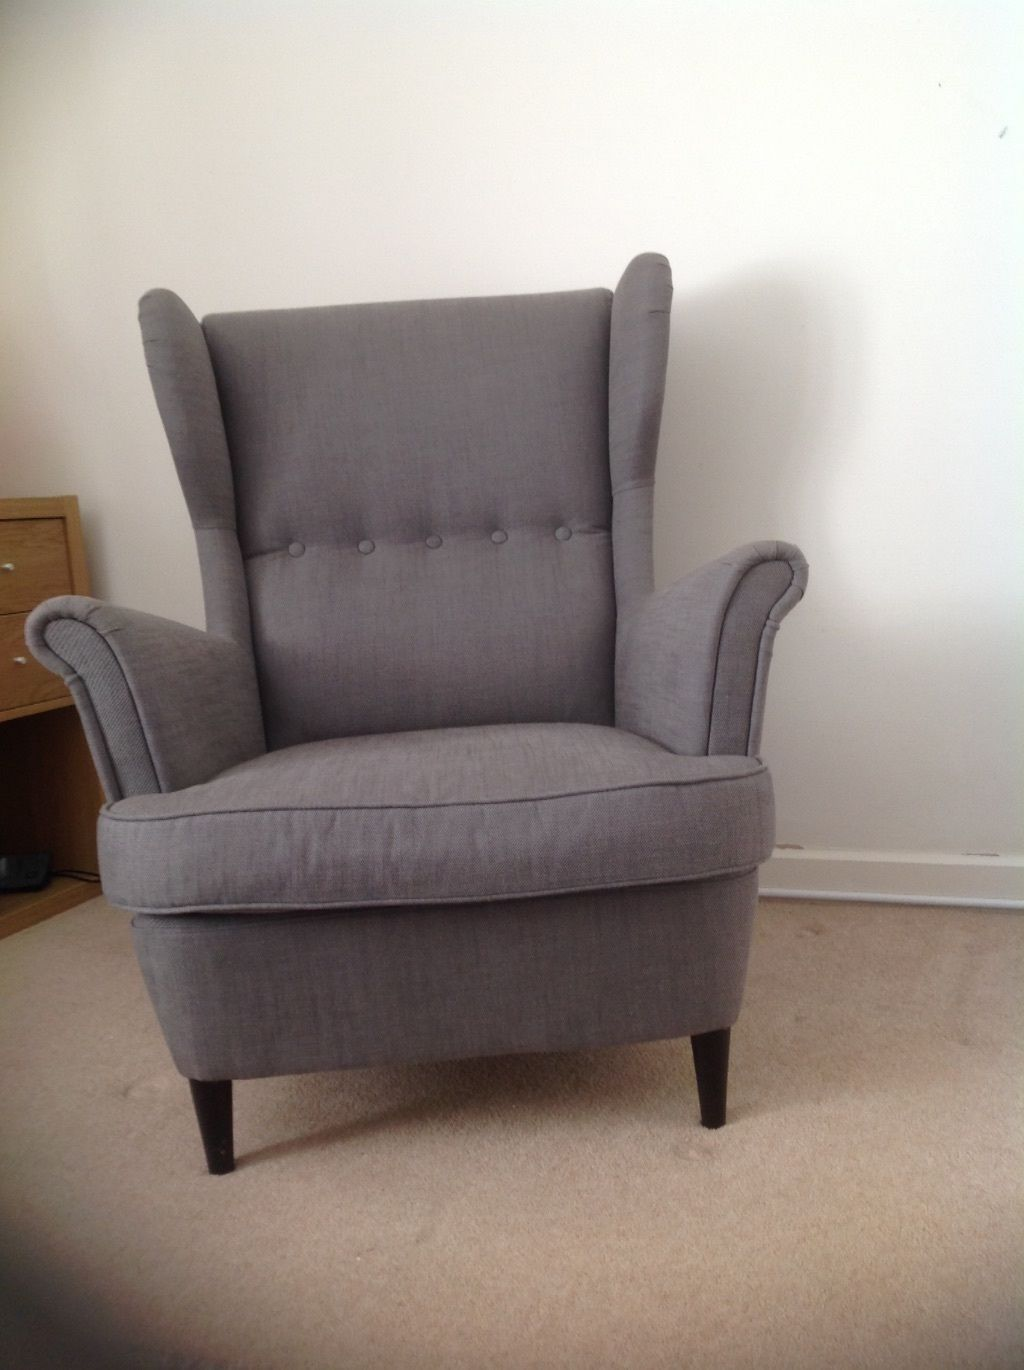 ikea-strandmon-chair-and-footstool-grey-_57